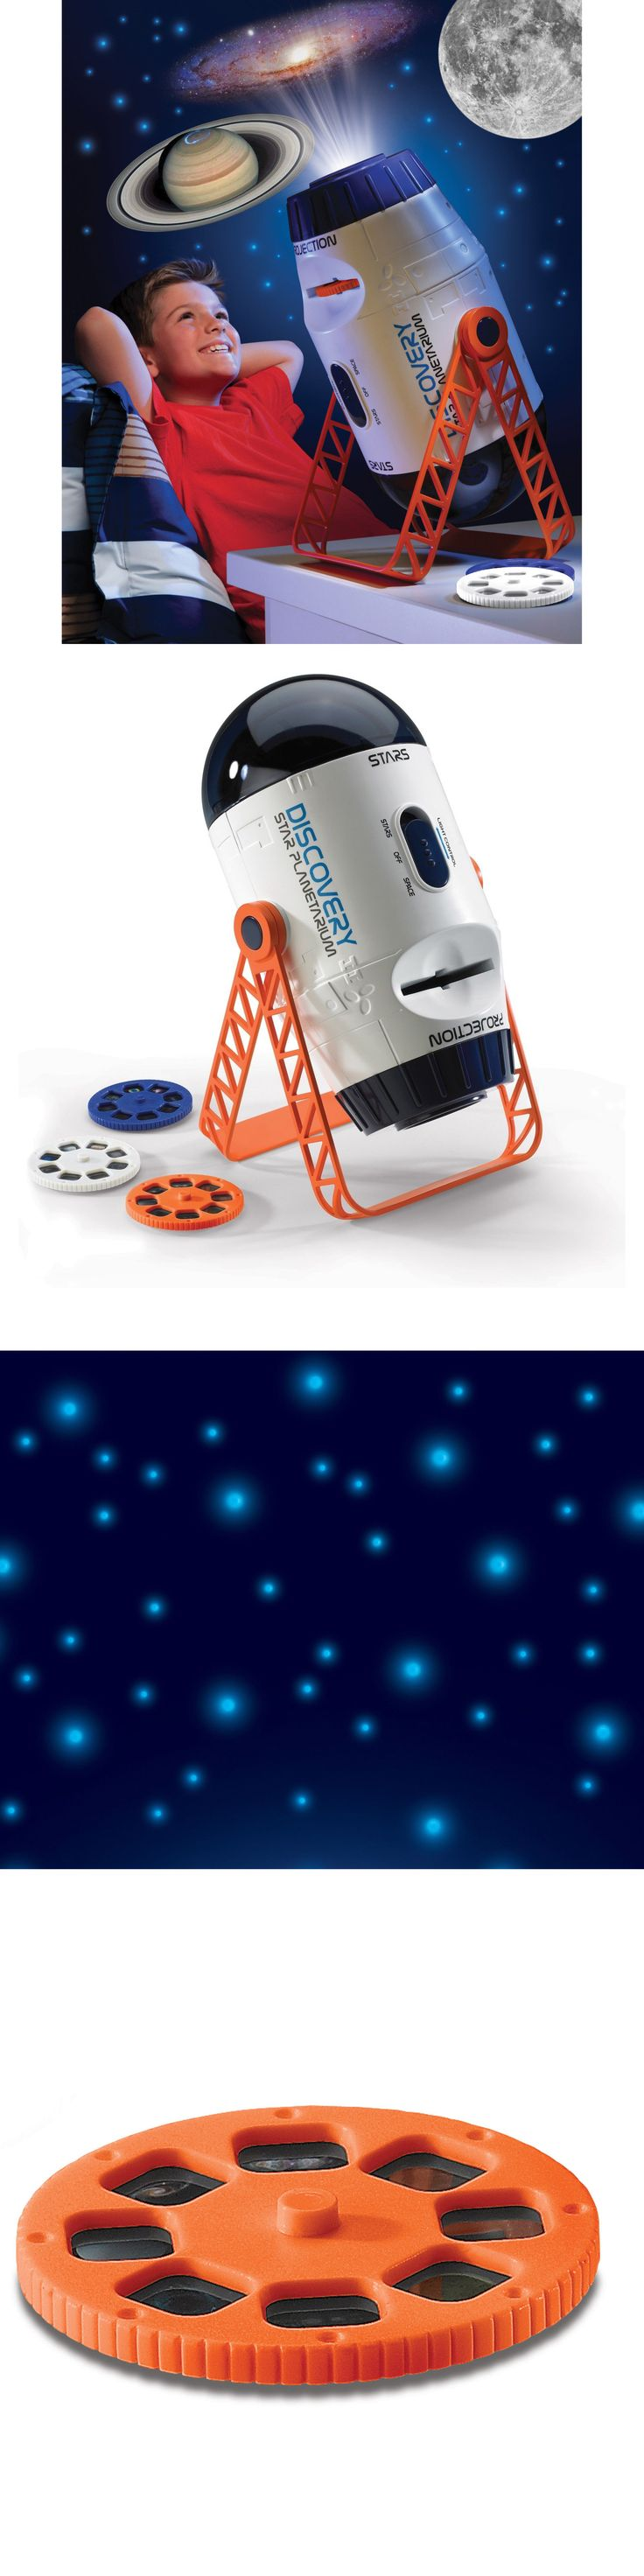 Telescopes And Astronomy 31745: Night Light Star Planetarium Projector Kids  Bedroom Space Laser Lamp Glow